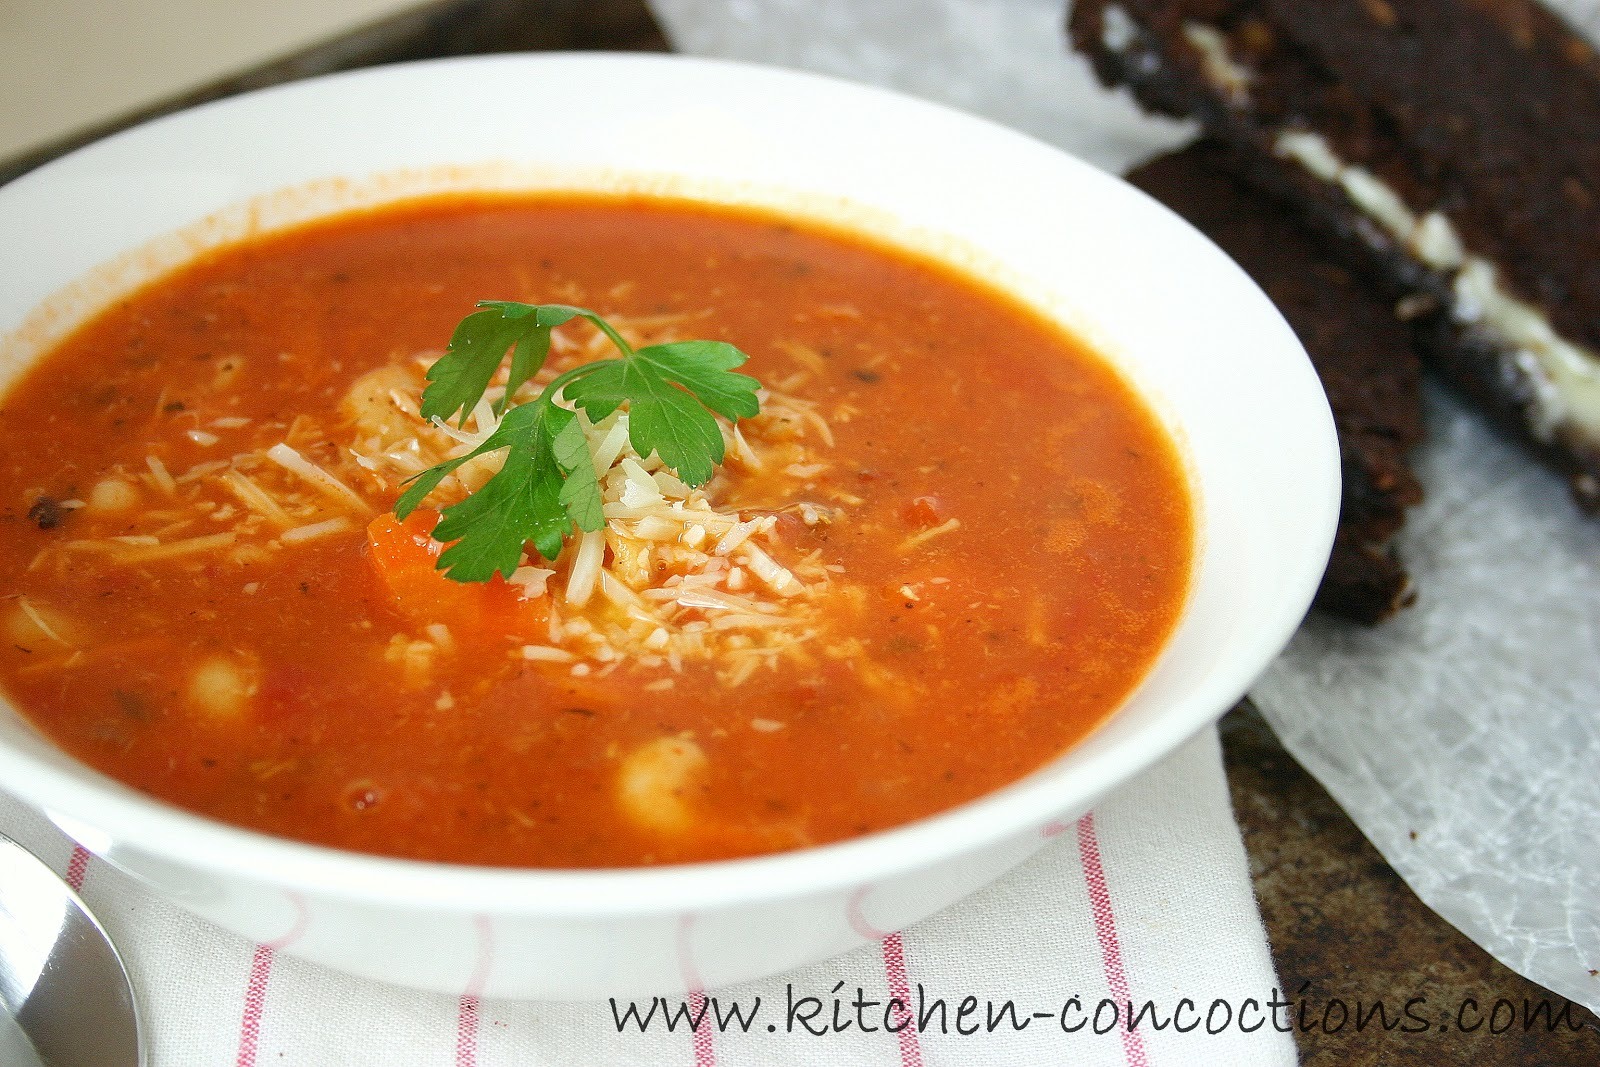 Kitchen Concoctions: Spicy Tomato and Turkey Soup